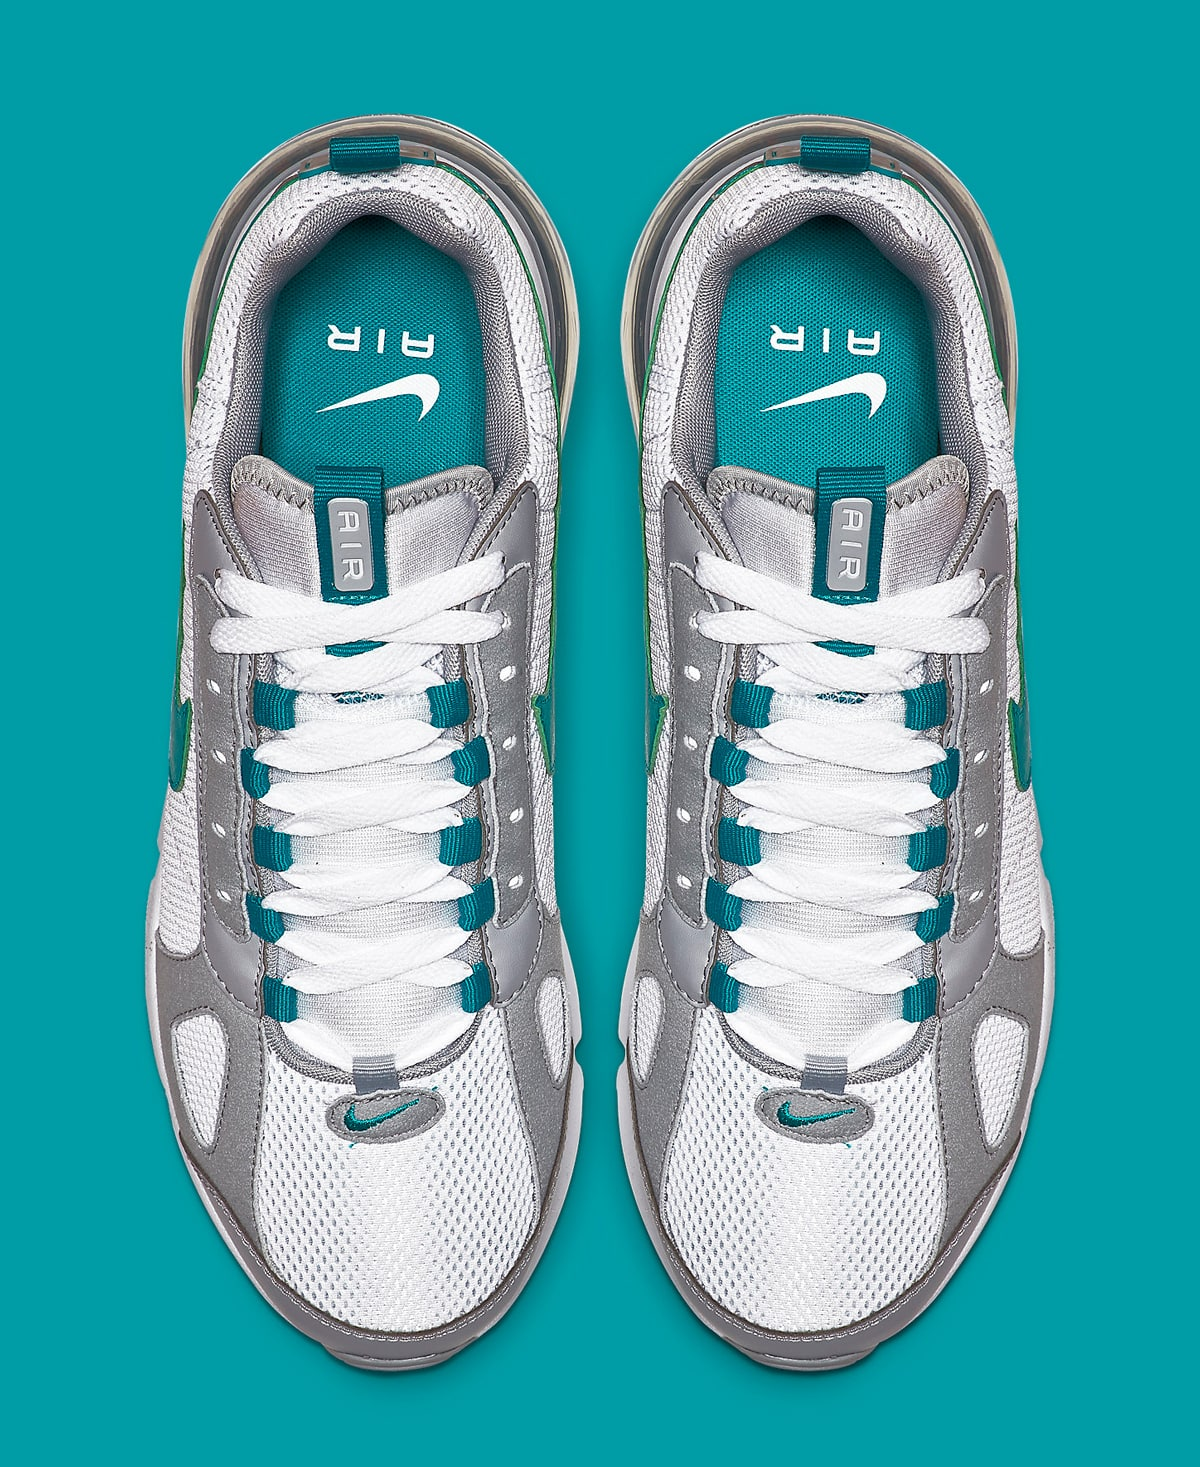 pirámide vestíbulo Víspera de Todos los Santos  The Air Max 270 Futura Takes on a Teal Colorway for Spring - HOUSE OF HEAT  | Sneaker News, Release Dates and Features